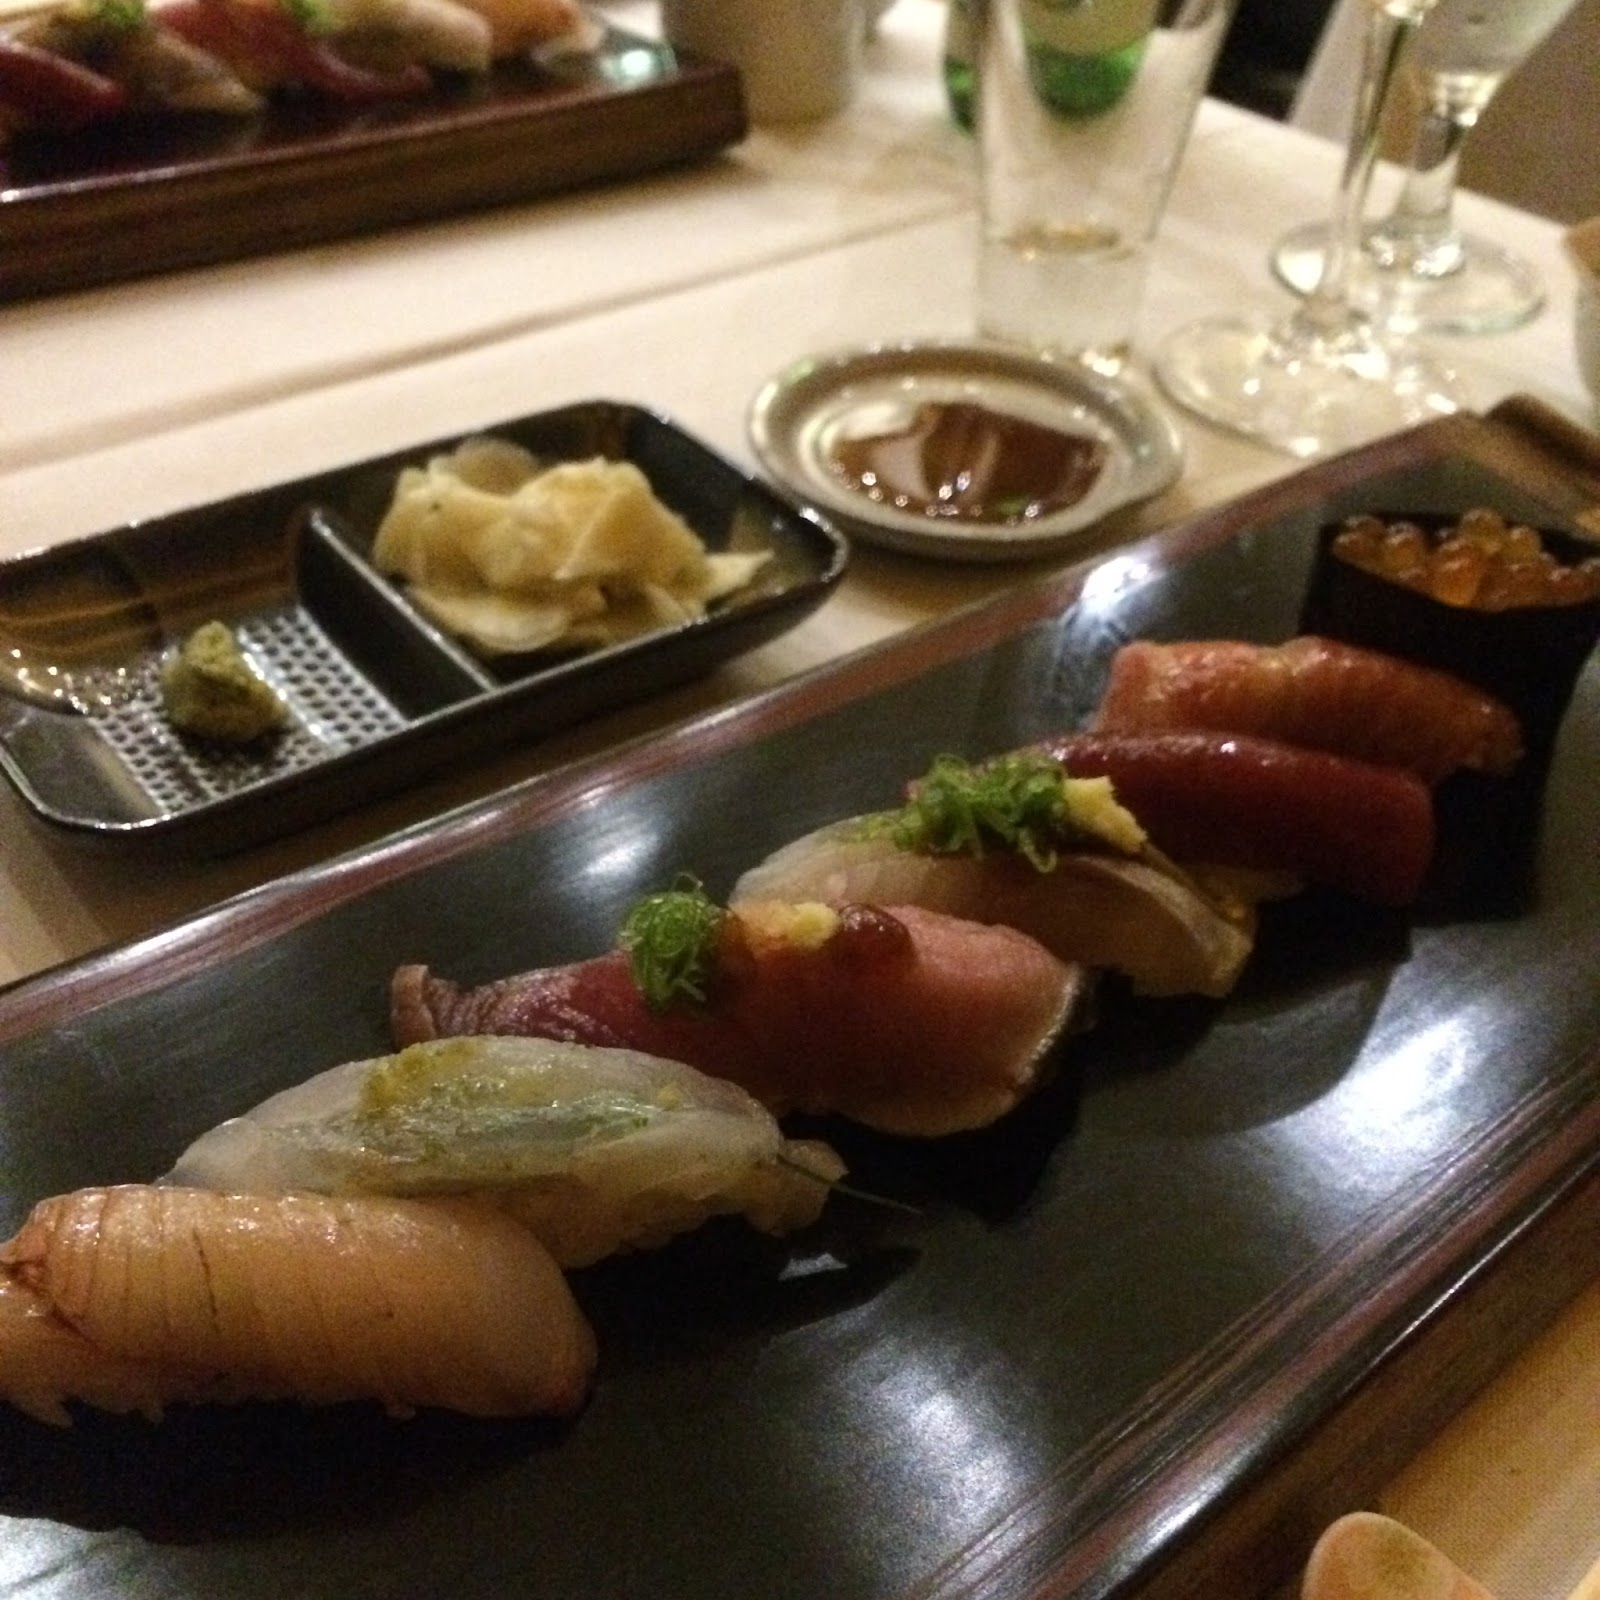 Featuring Craft Sake Breweries From Diffe Regions Of An The Dinner Was At A Por Sushi Restaurant Shiki In Beverly Hills